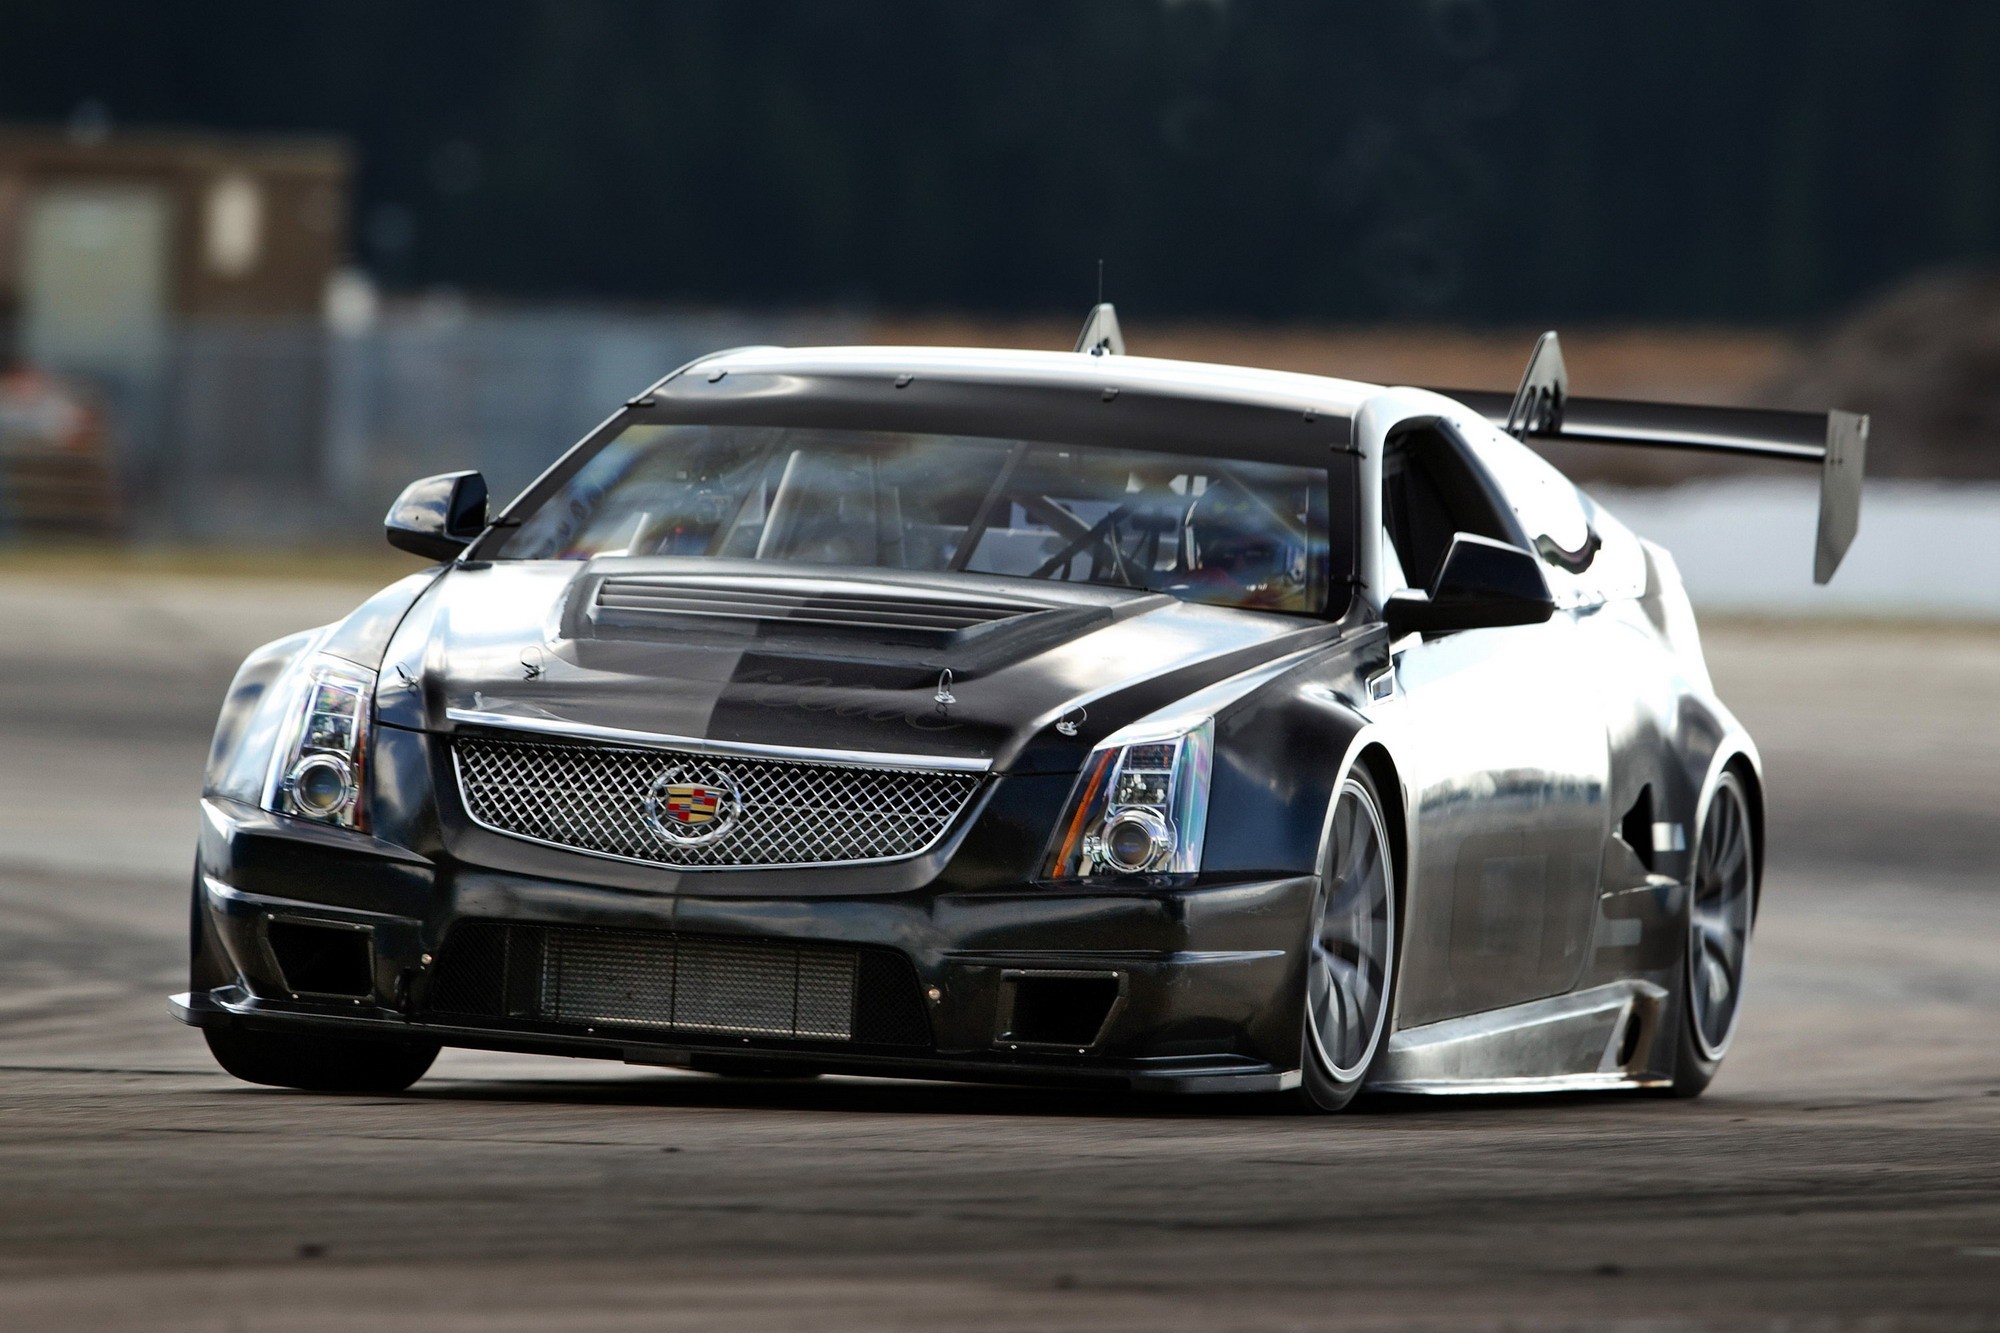 2011 cadillac cts v coupe race car top speed. Black Bedroom Furniture Sets. Home Design Ideas